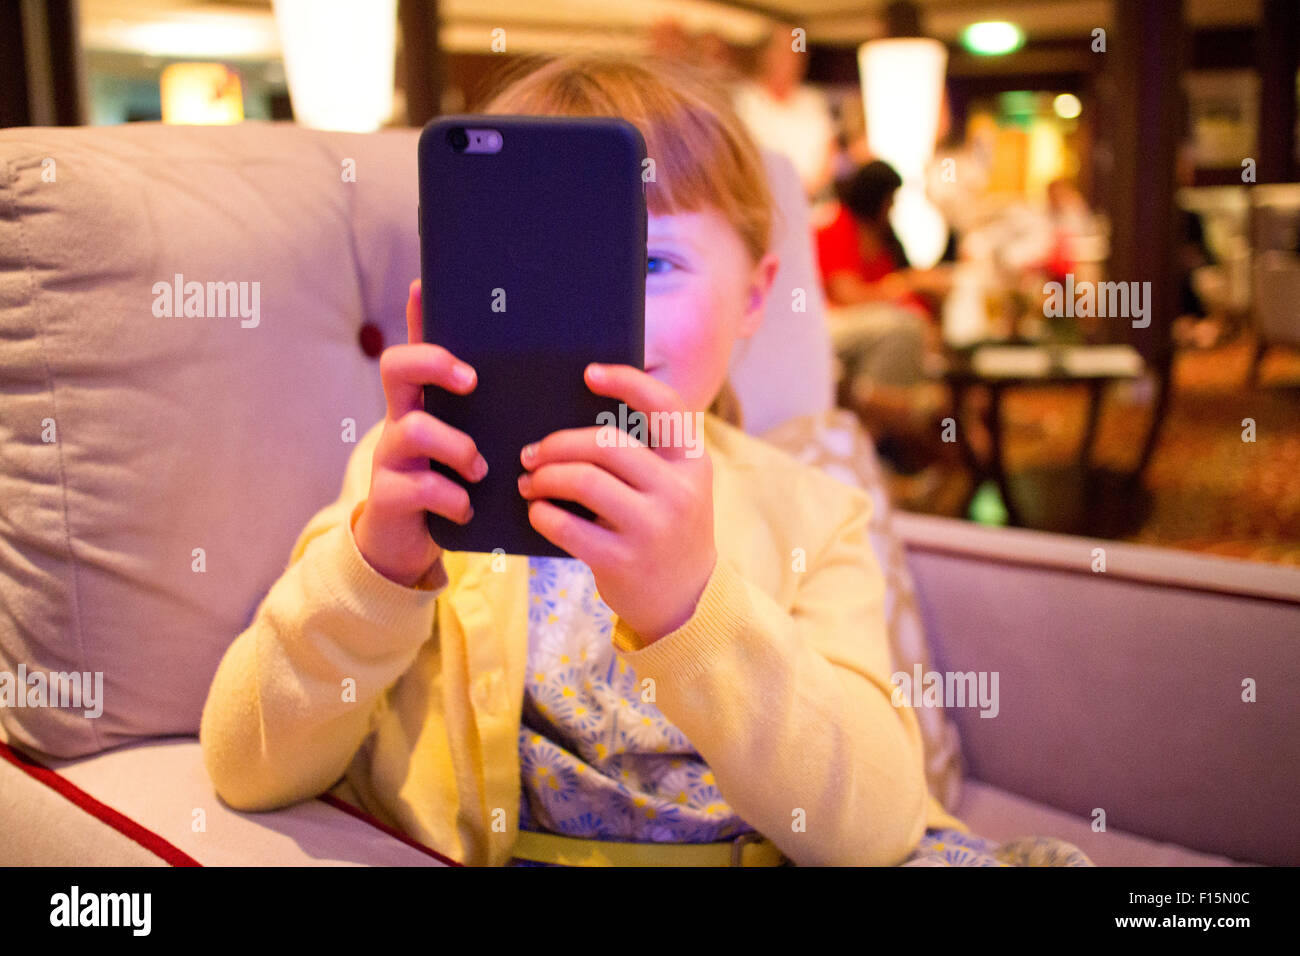 5 year old girl taking a photo with an iphone 6 plus - Stock Image